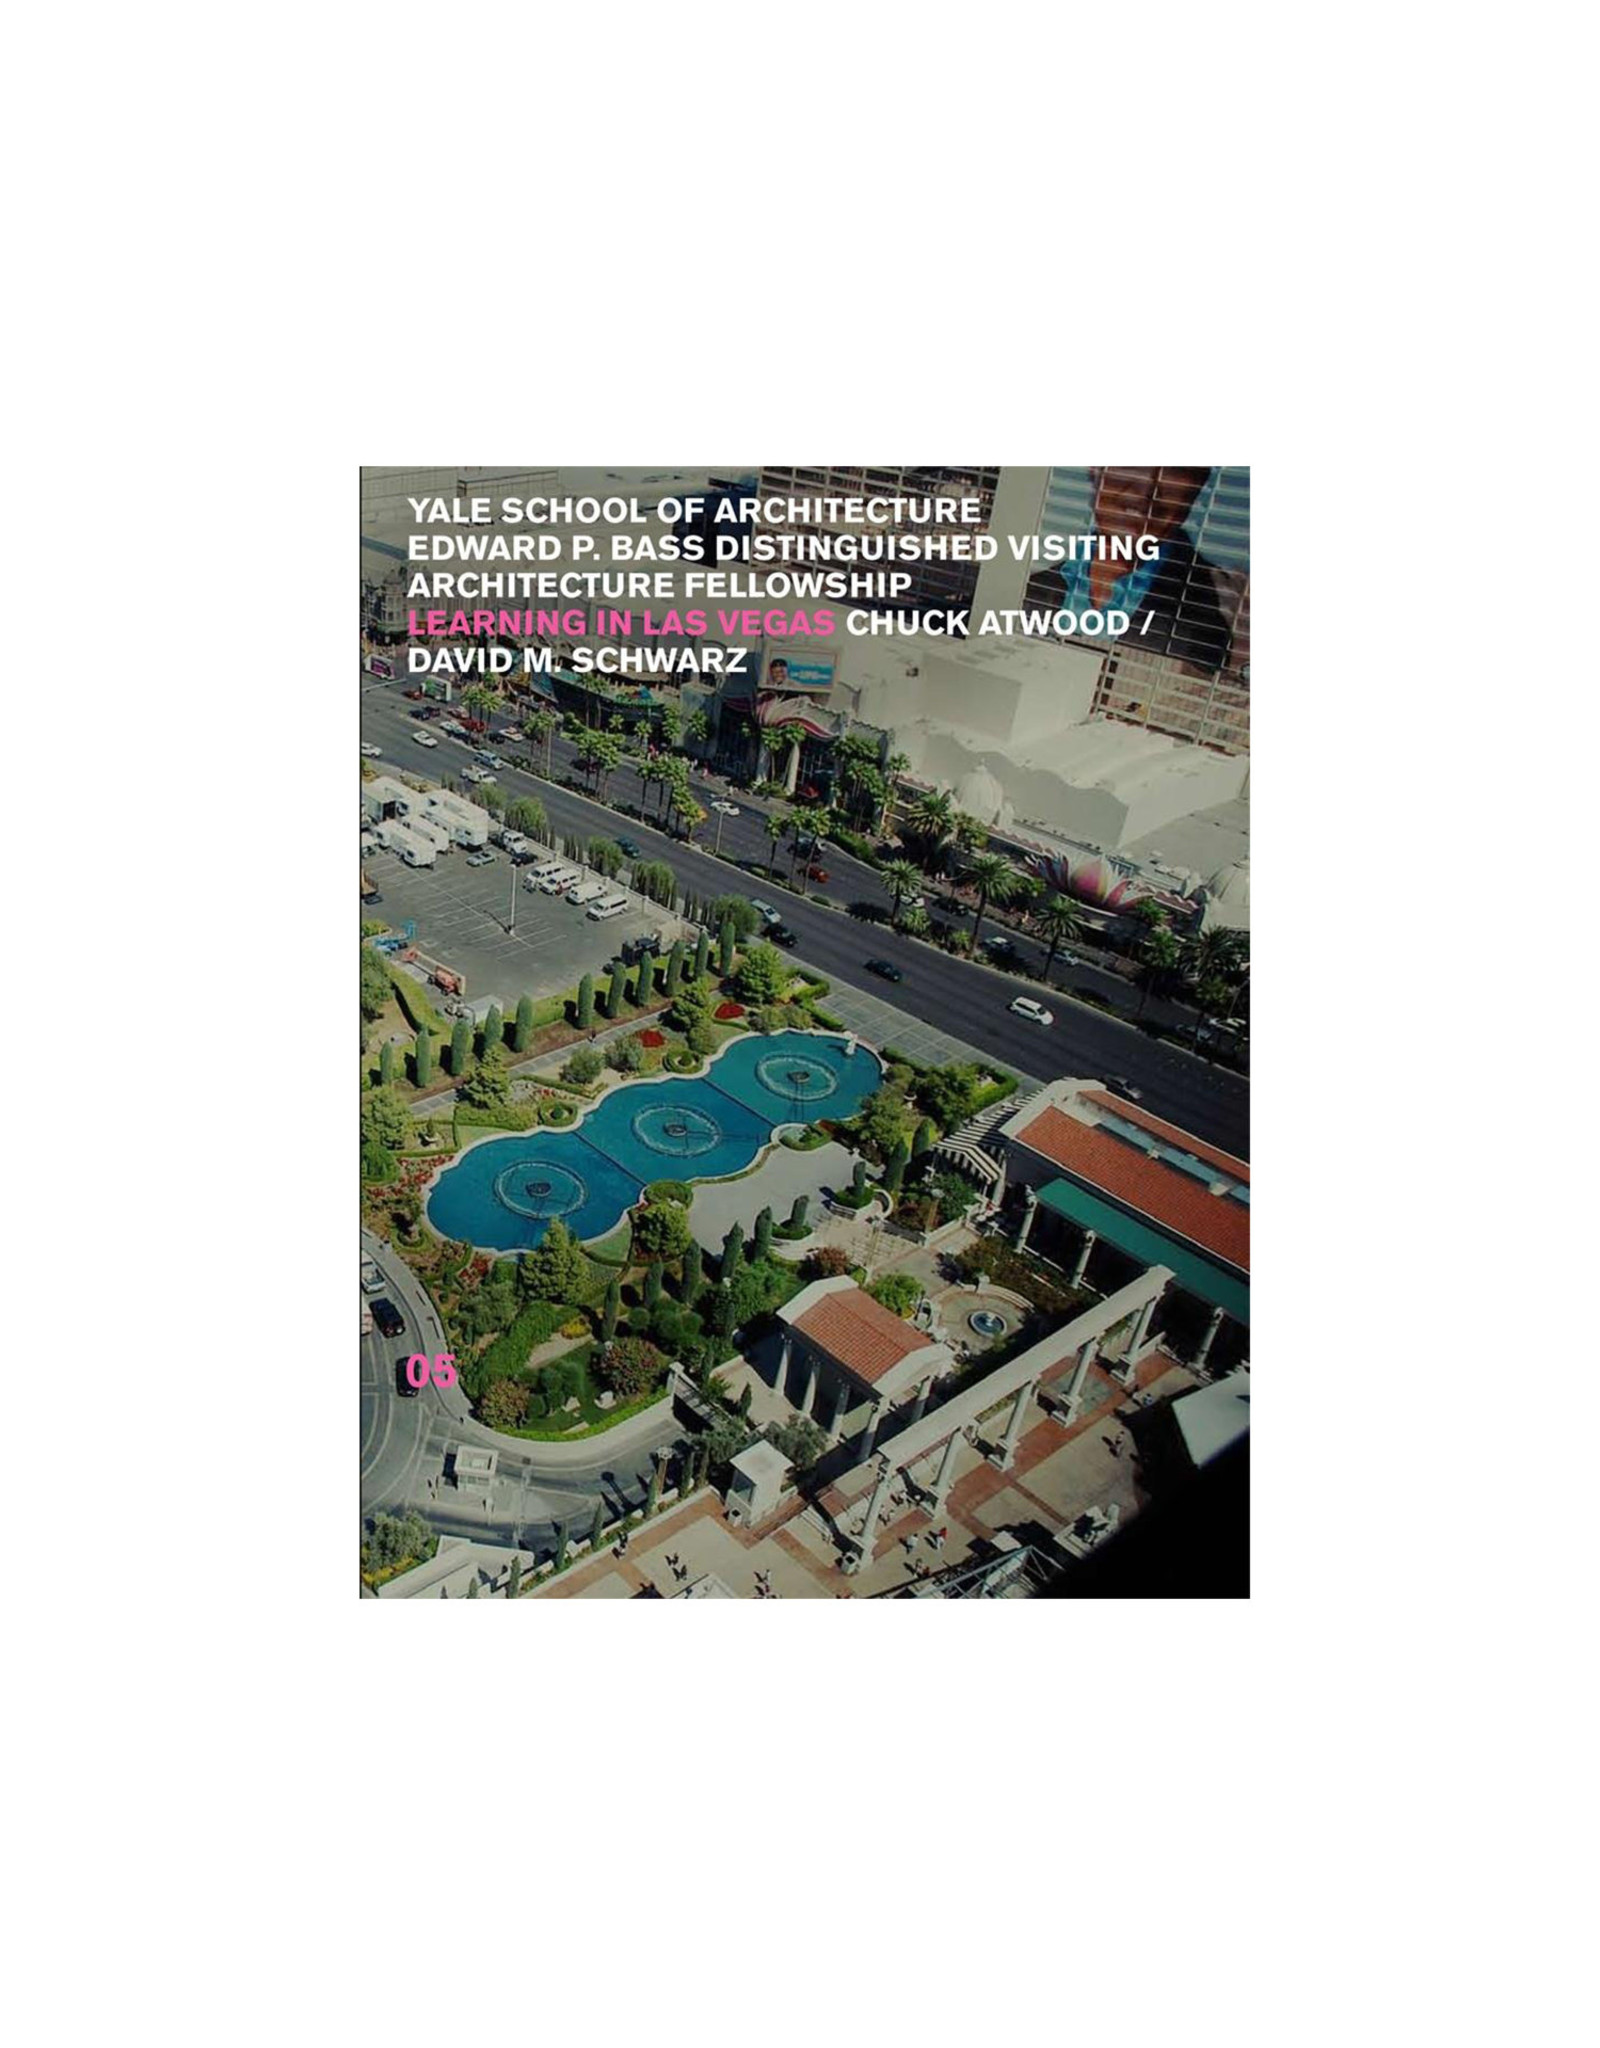 Yale School of Architecture, Edward P. Bass Distinguished Visiting Architecture Fellowship: Learning in Las Vegas